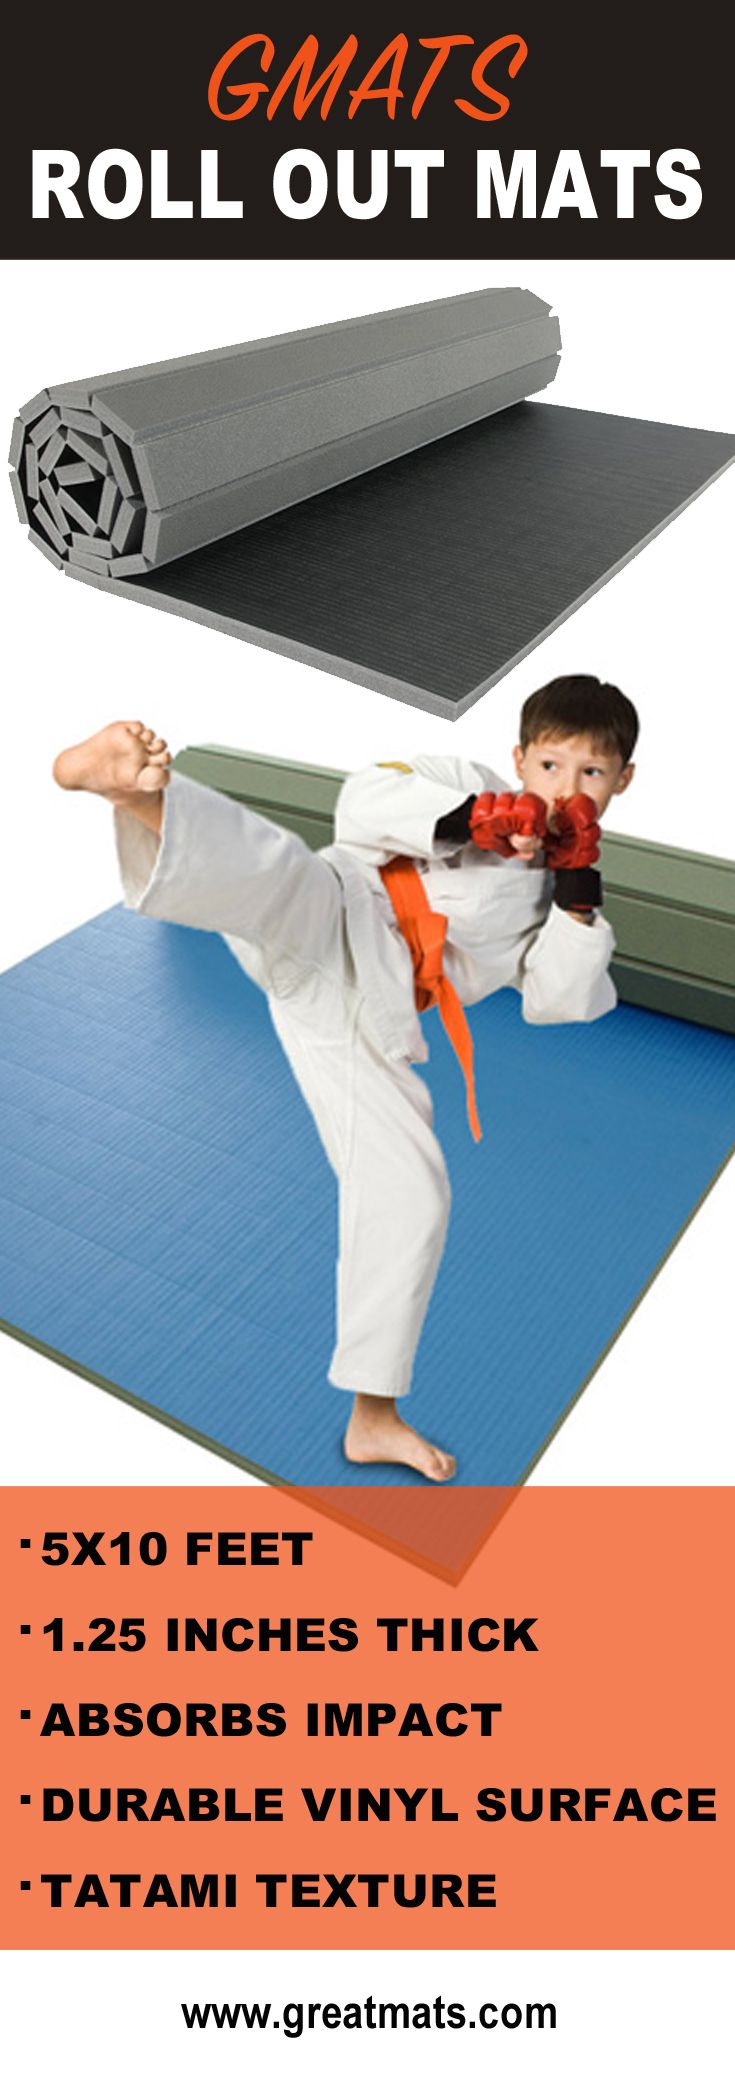 Mats roll out mats are some of the best home exercise gym